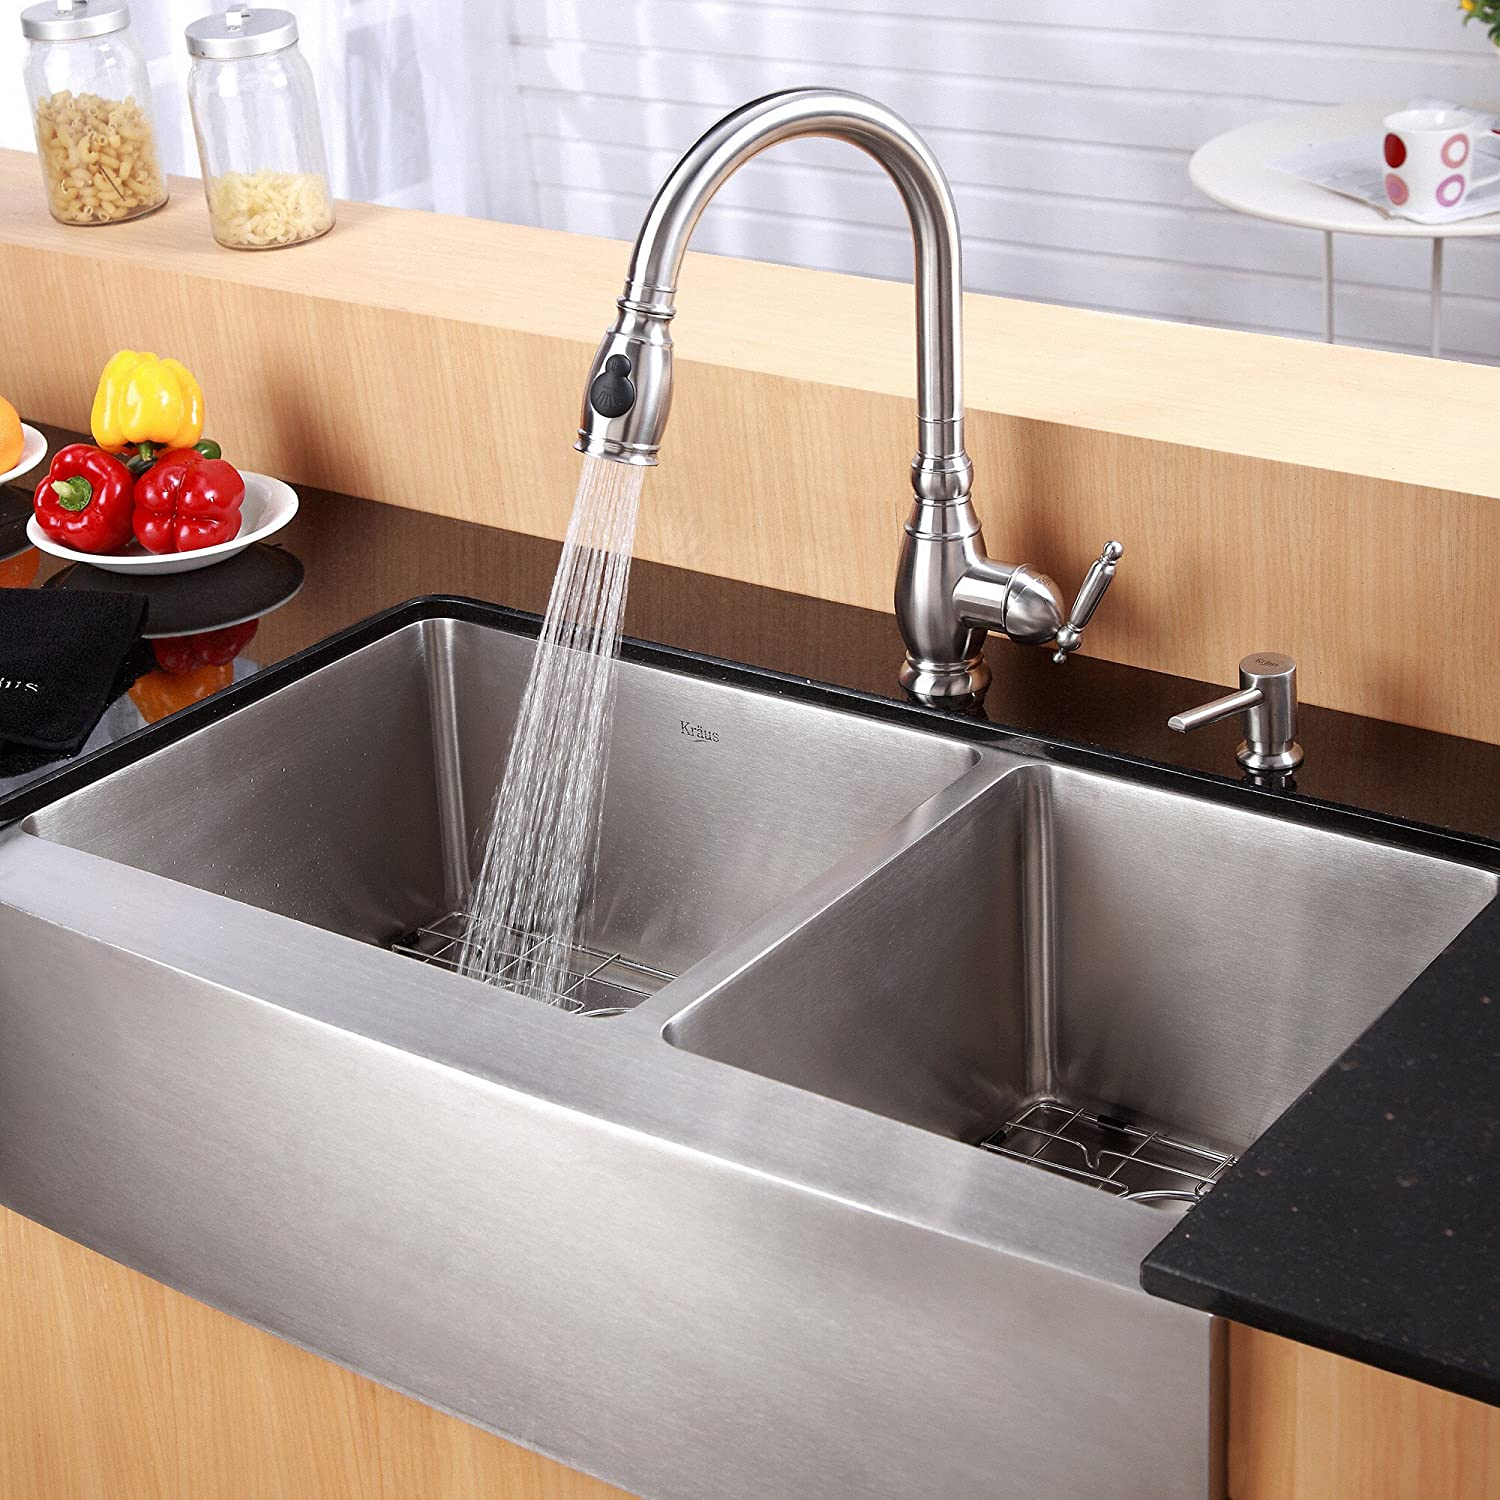 Best Stainless Steel Sinks 2017 - Uncle Paul's Top 5 Choices